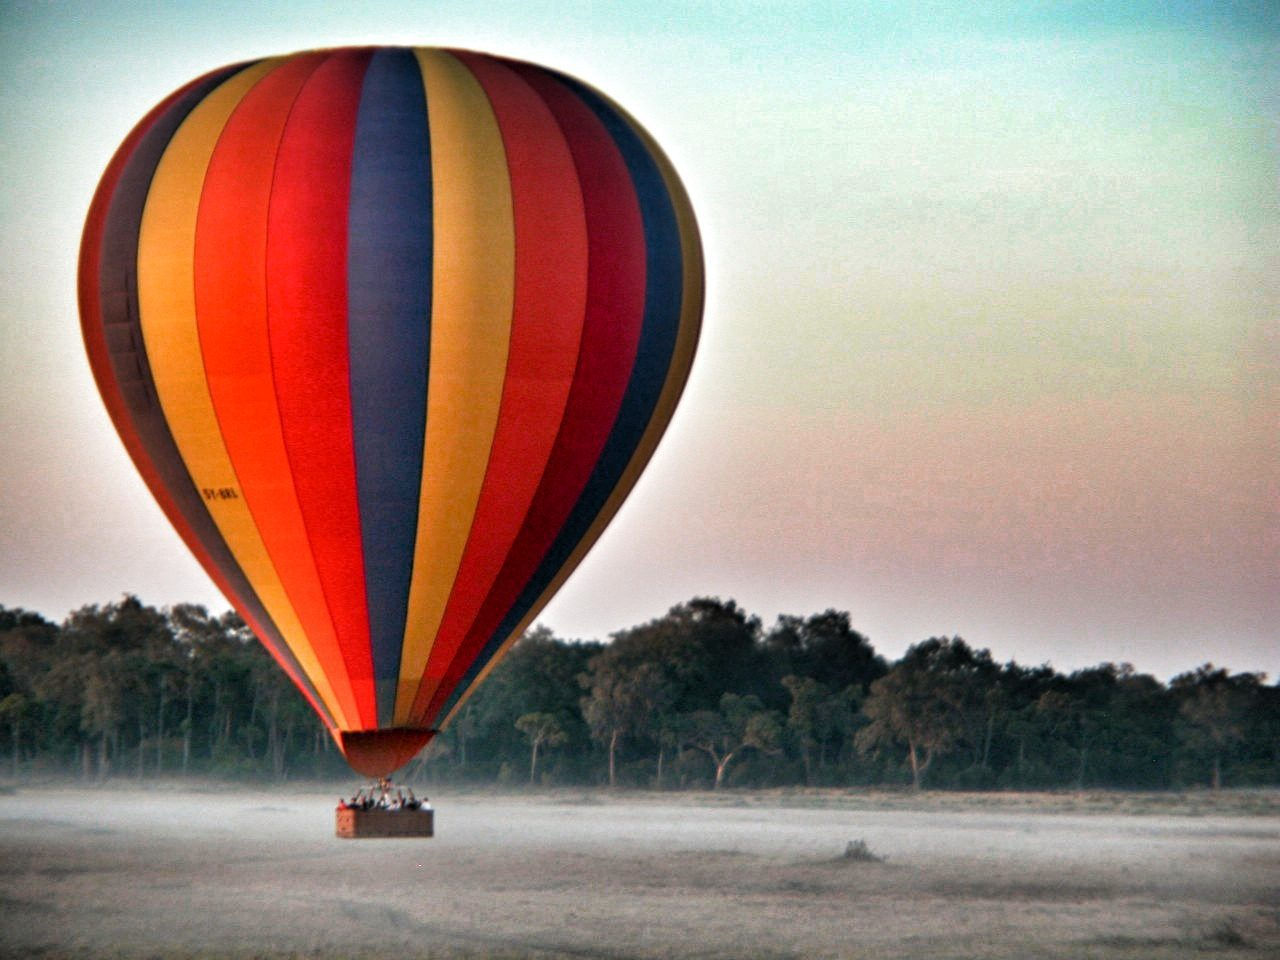 hot air balloon hovers closely above the ground in front of a pastel sky